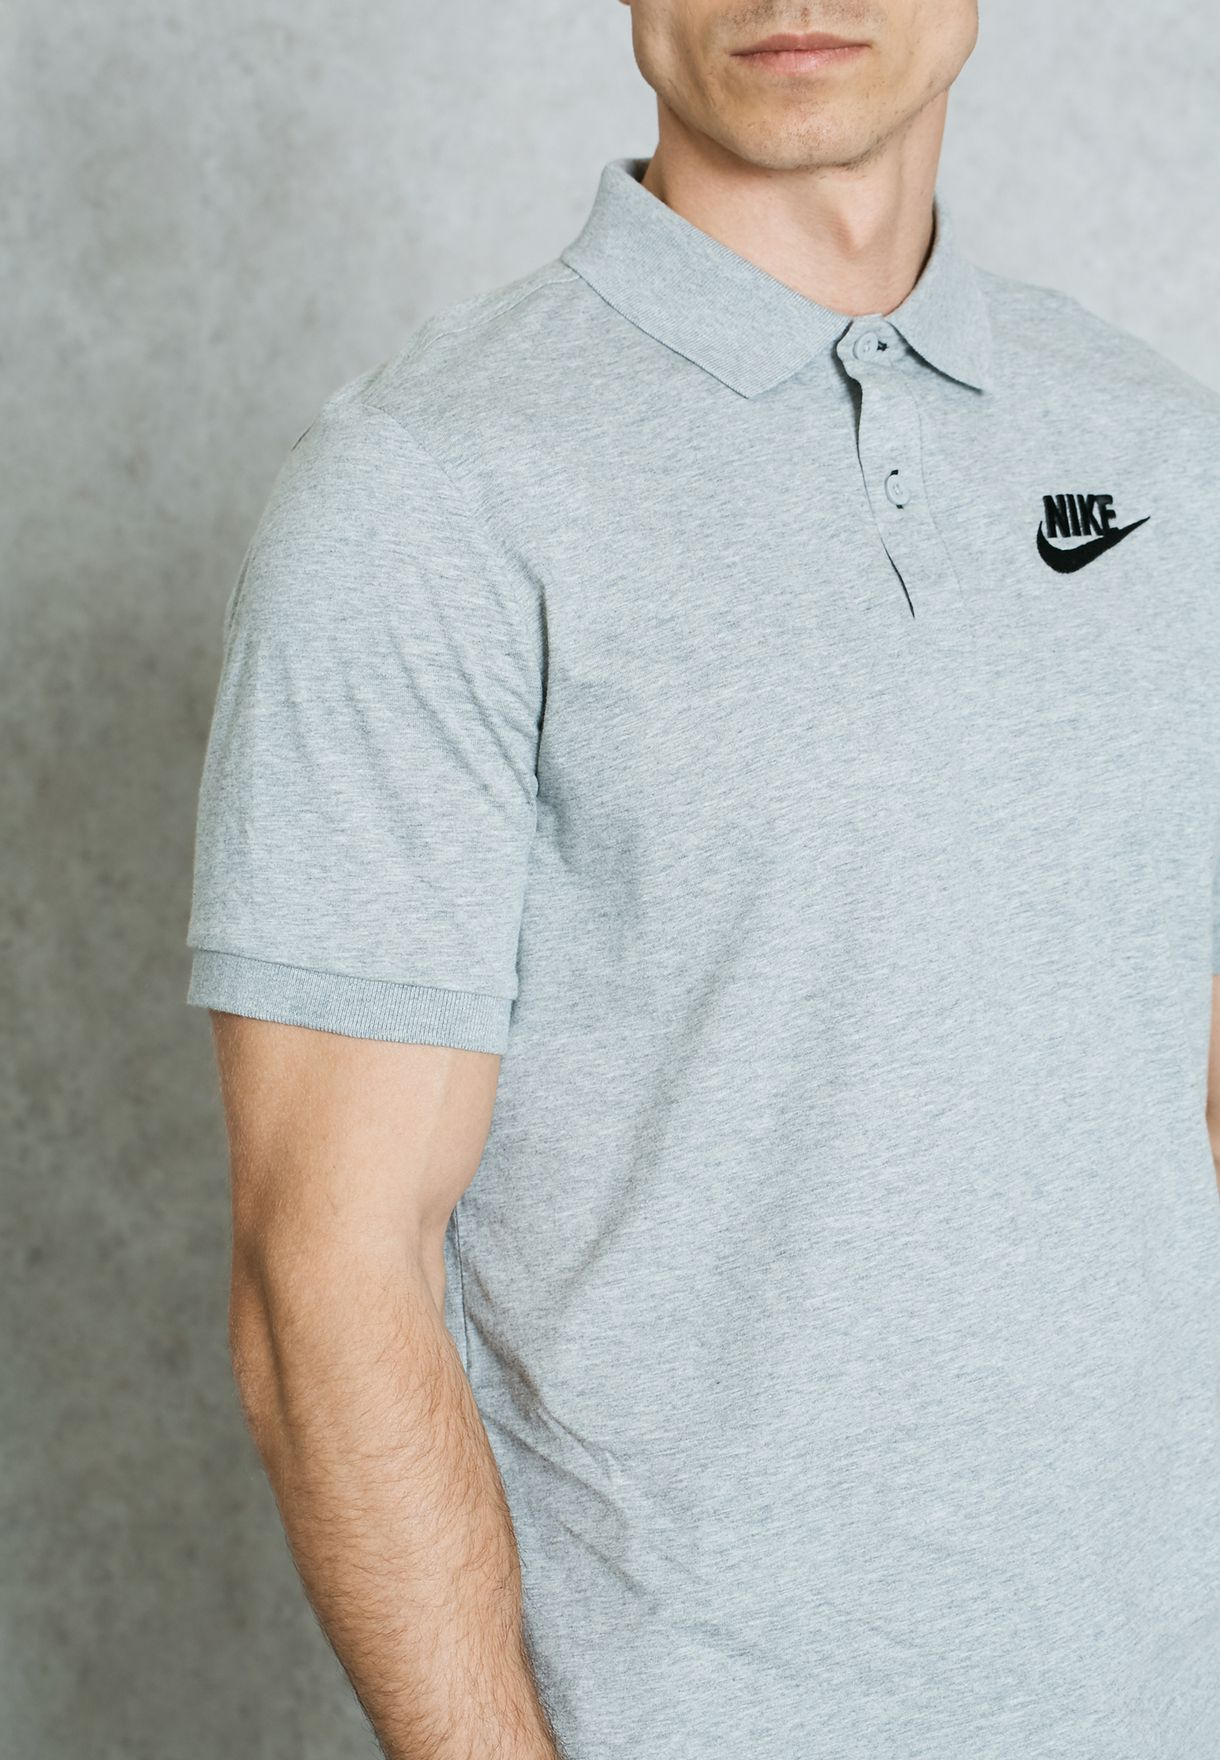 1b65883880 Shop Nike grey Matchup Jersey Polo 832865-063 for Men in Saudi ...